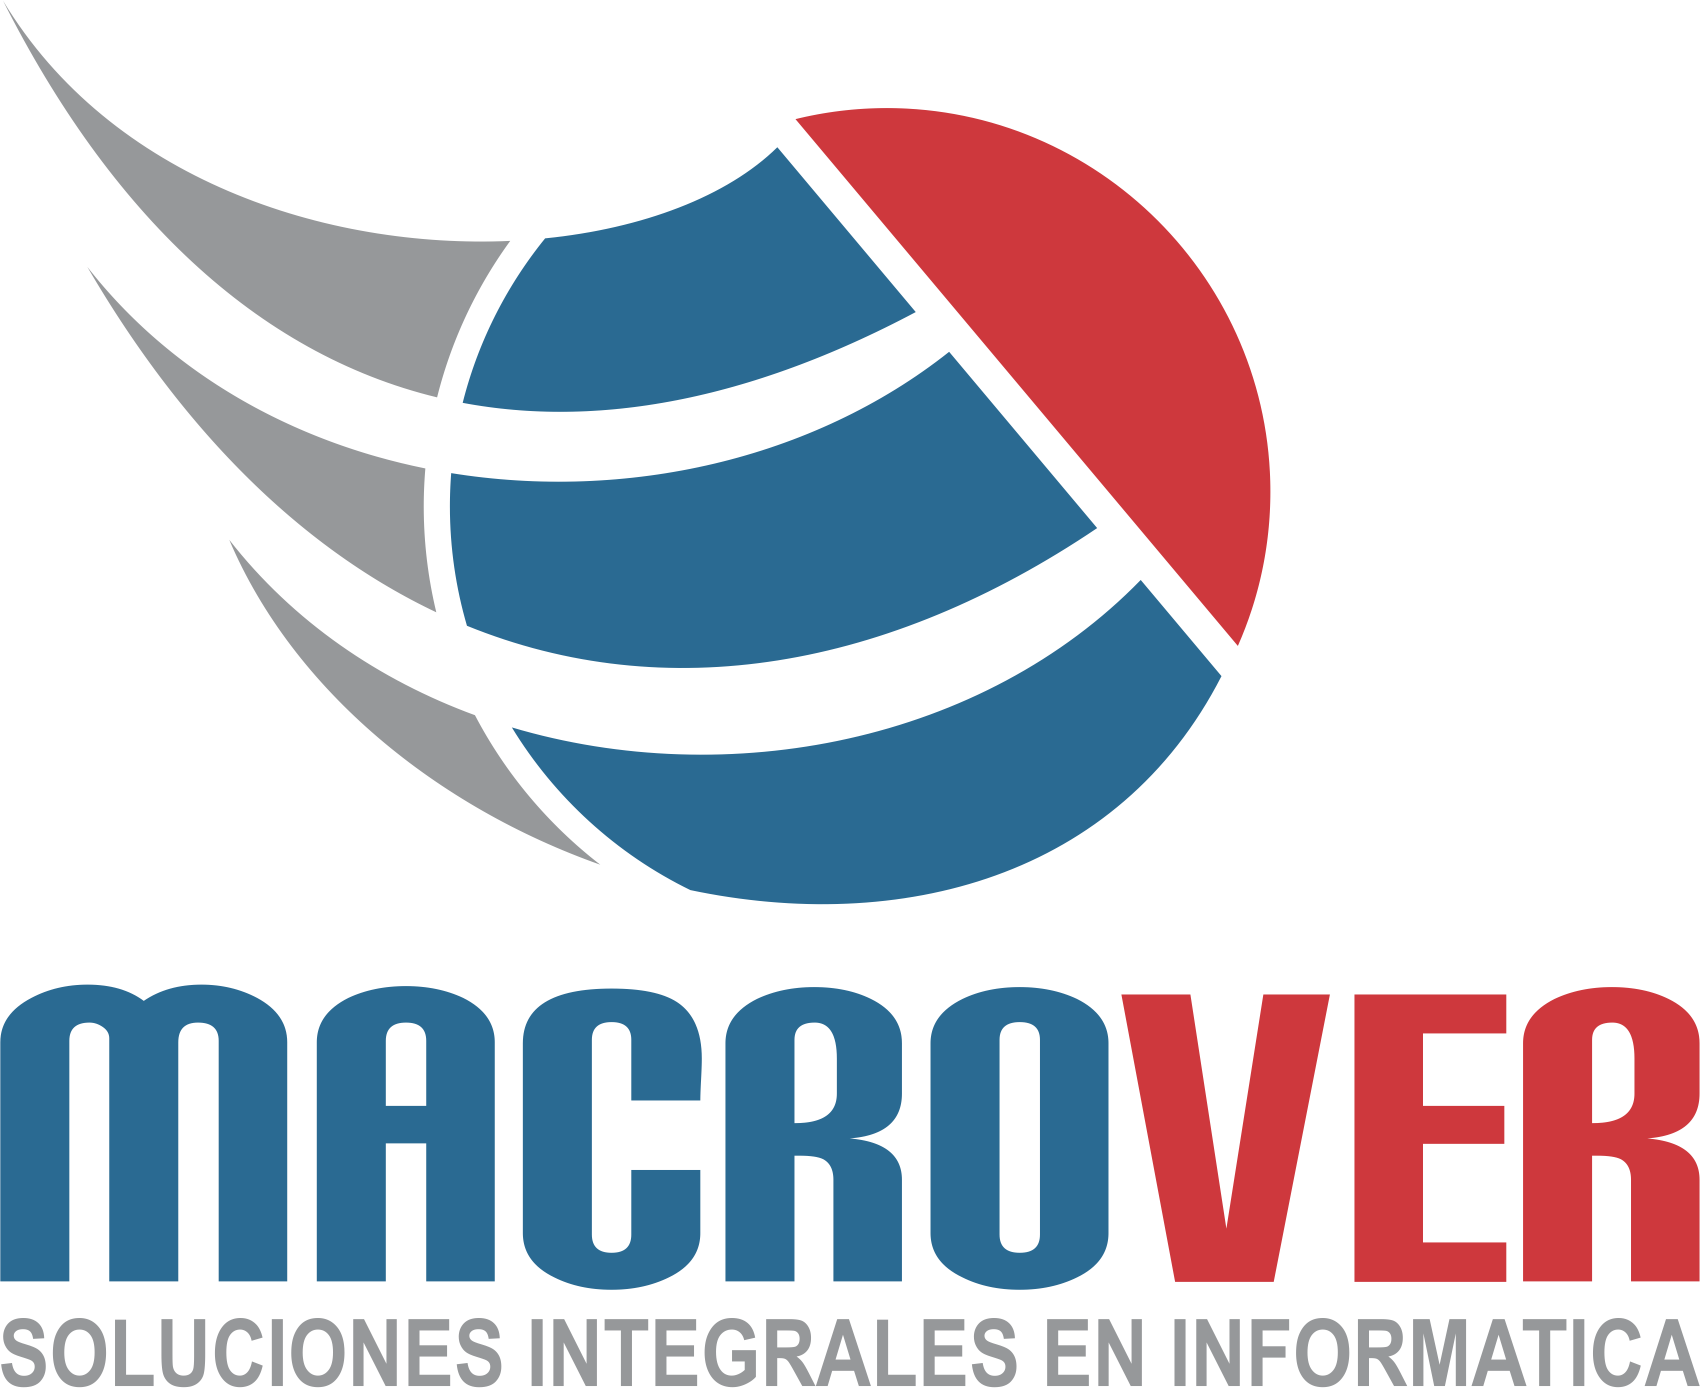 MACROVER